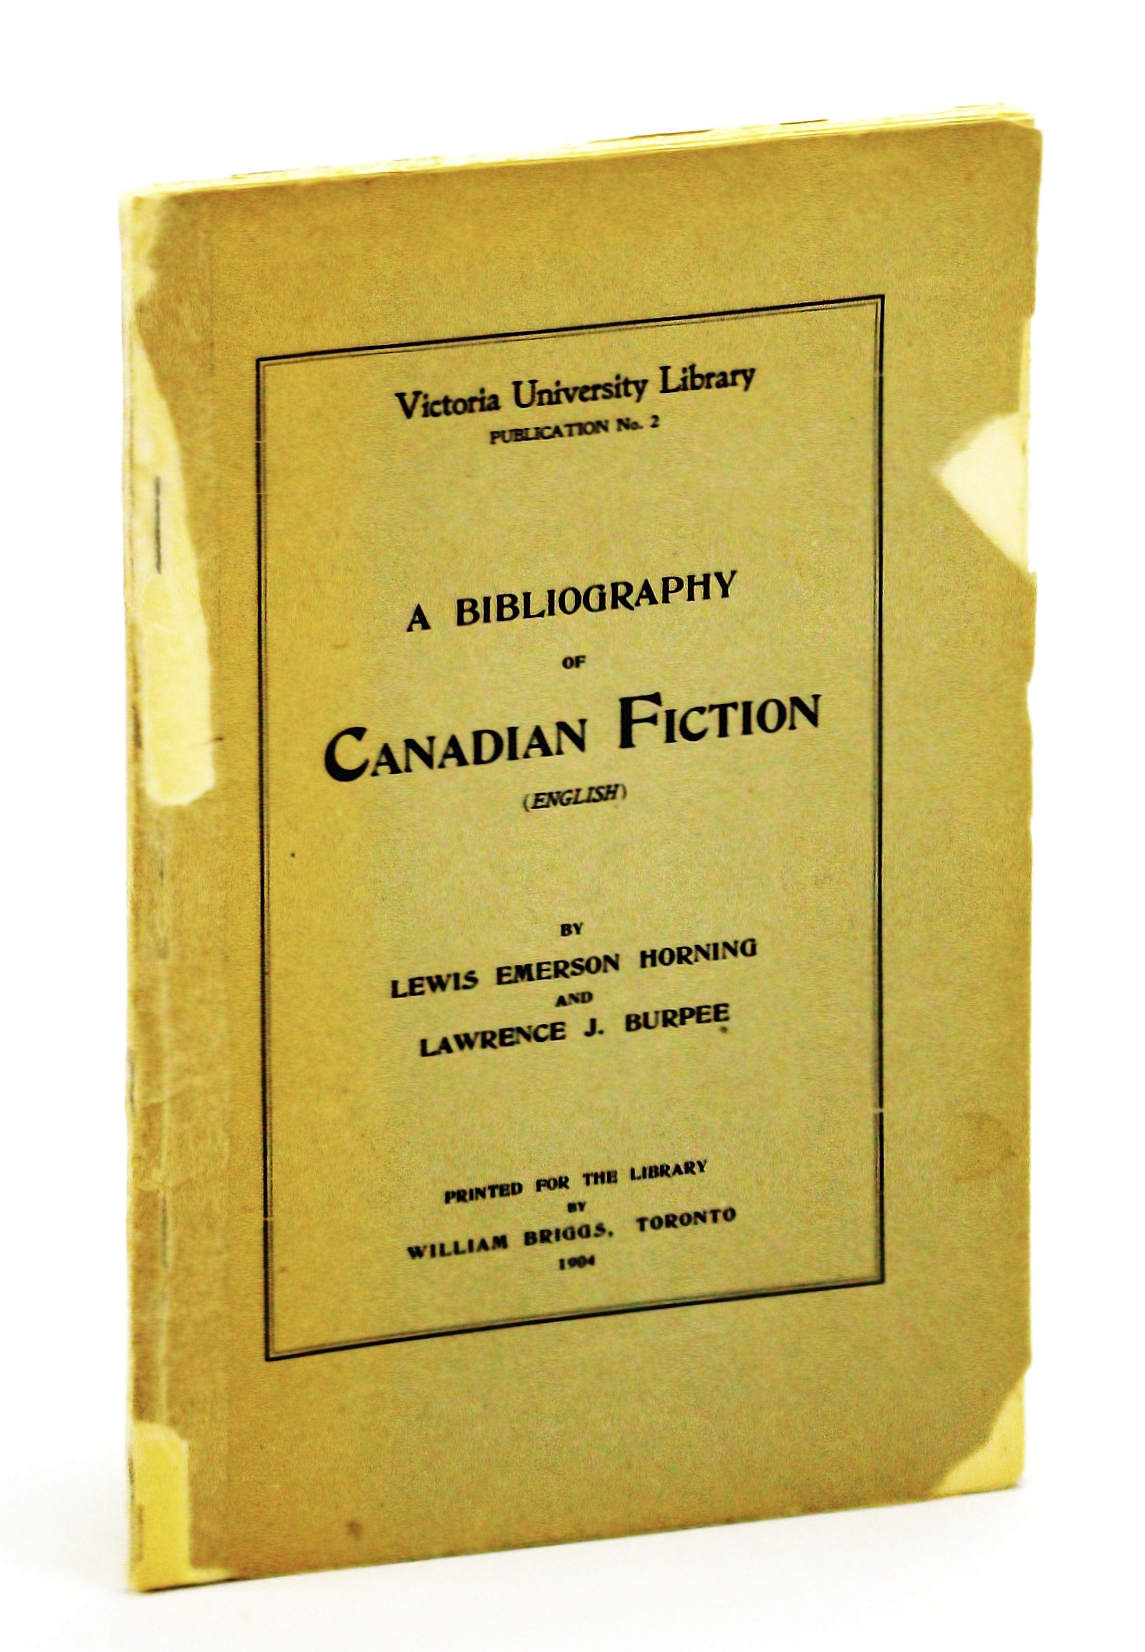 Image for A bibliography of Canadian fiction (English) (Victoria University Library. Publication)